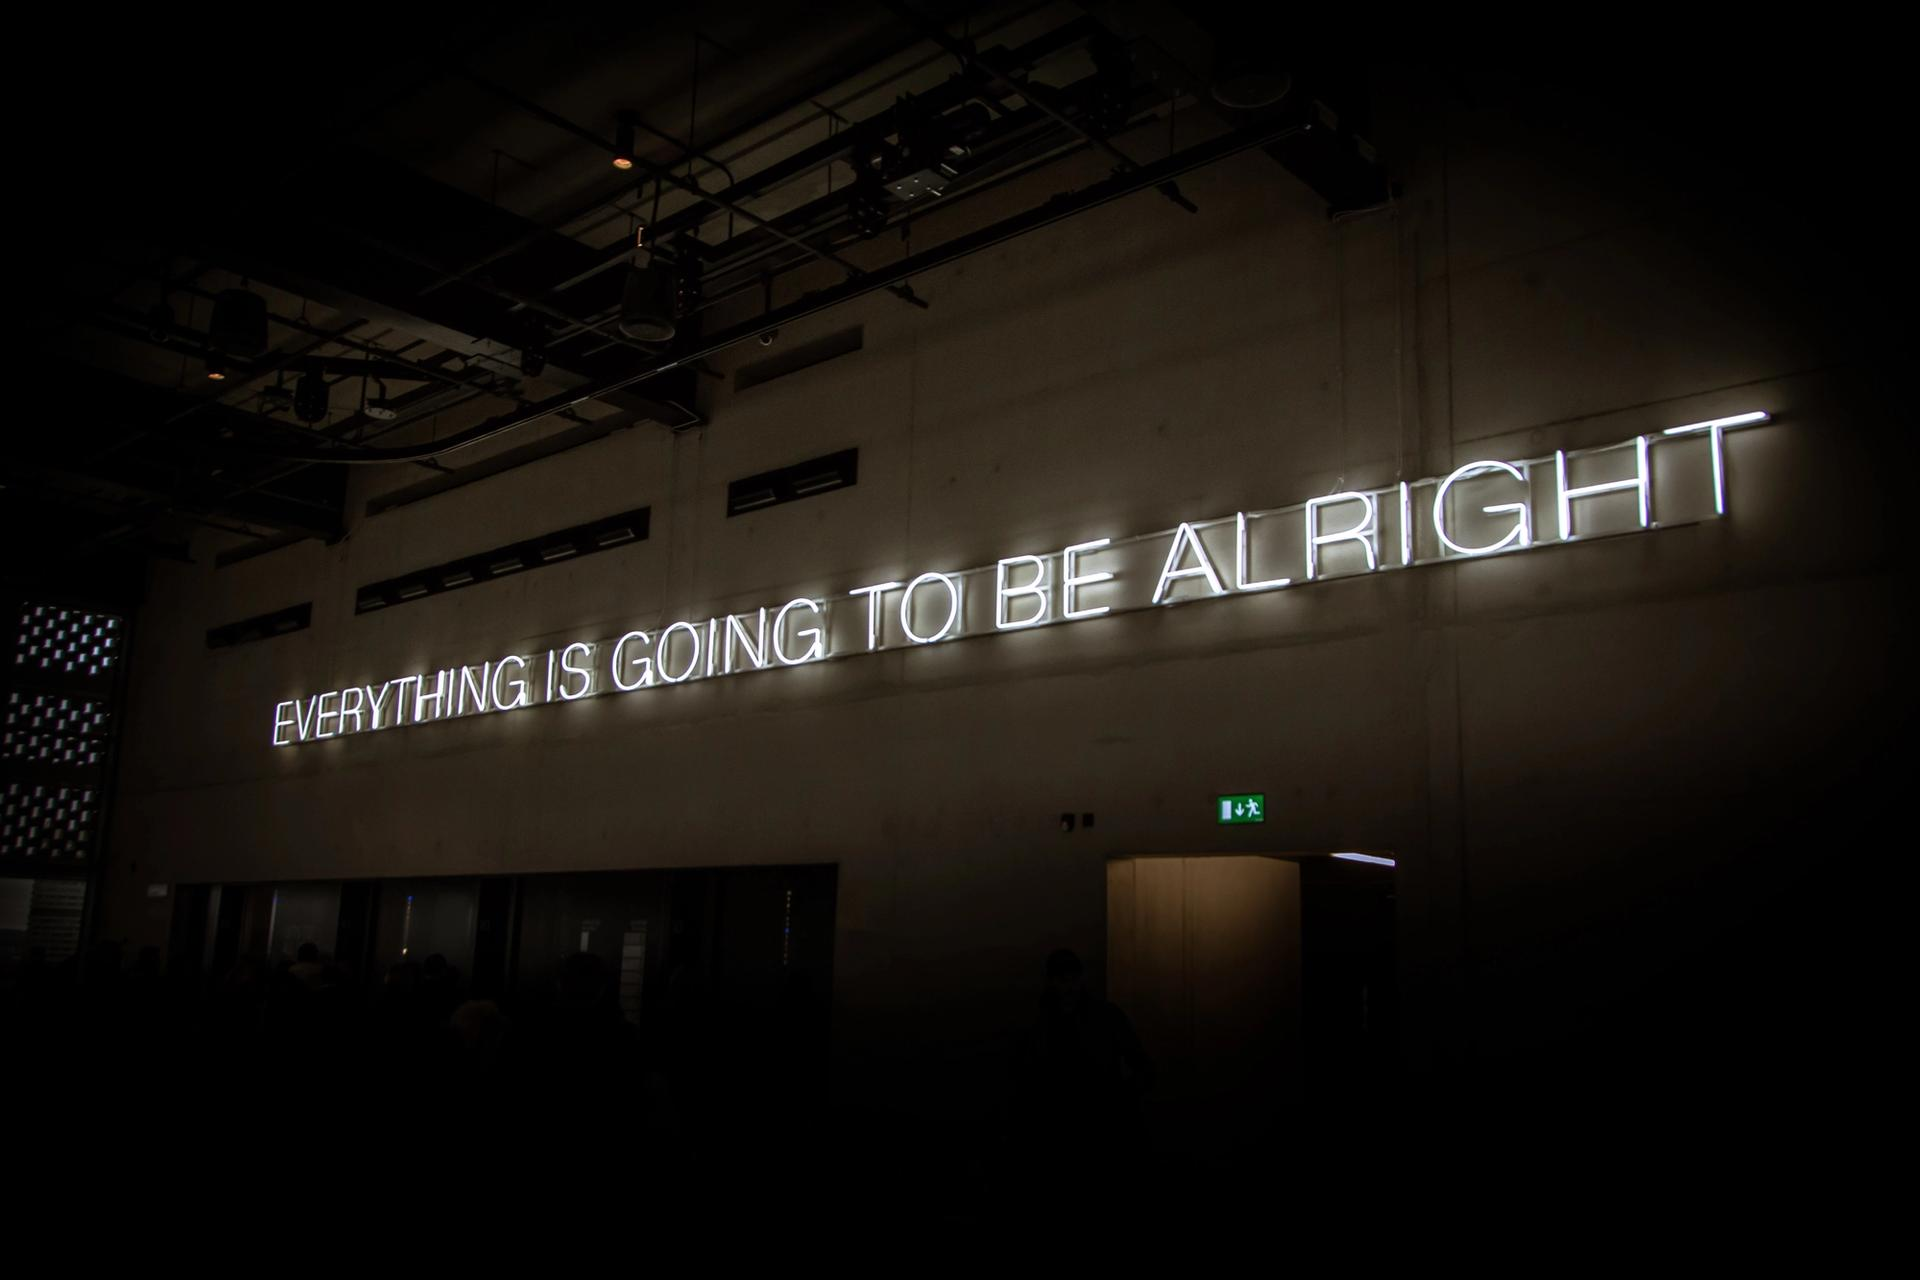 Tate Modern in London is among the four Tate locations that will be shut from tomorrow due to coronavirus © Paolo Bendandi